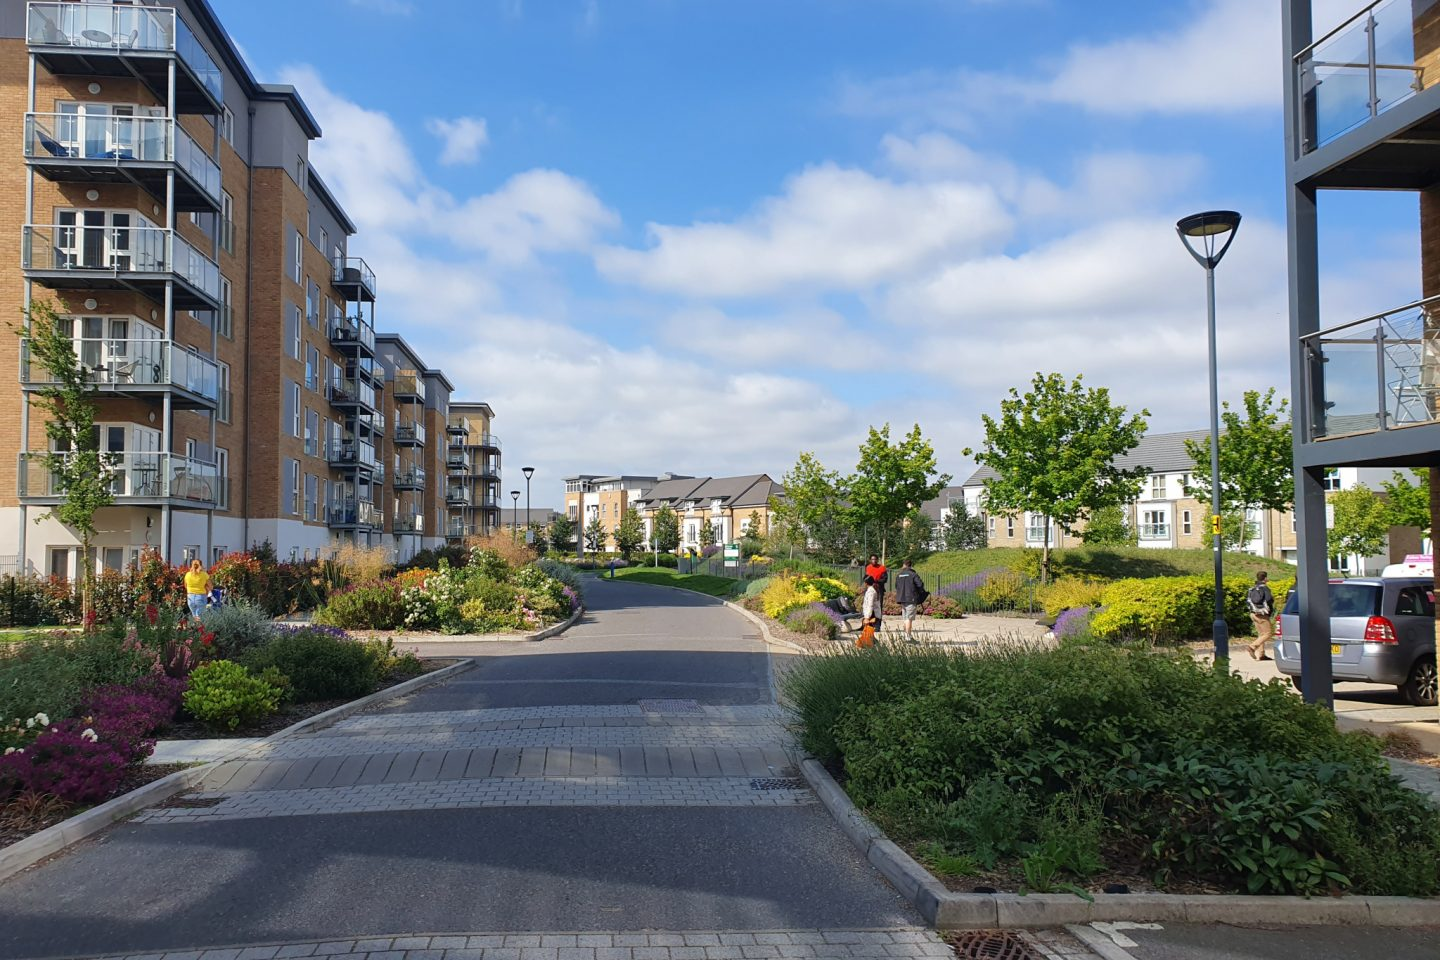 Image of Drayton Garden Village, UB7